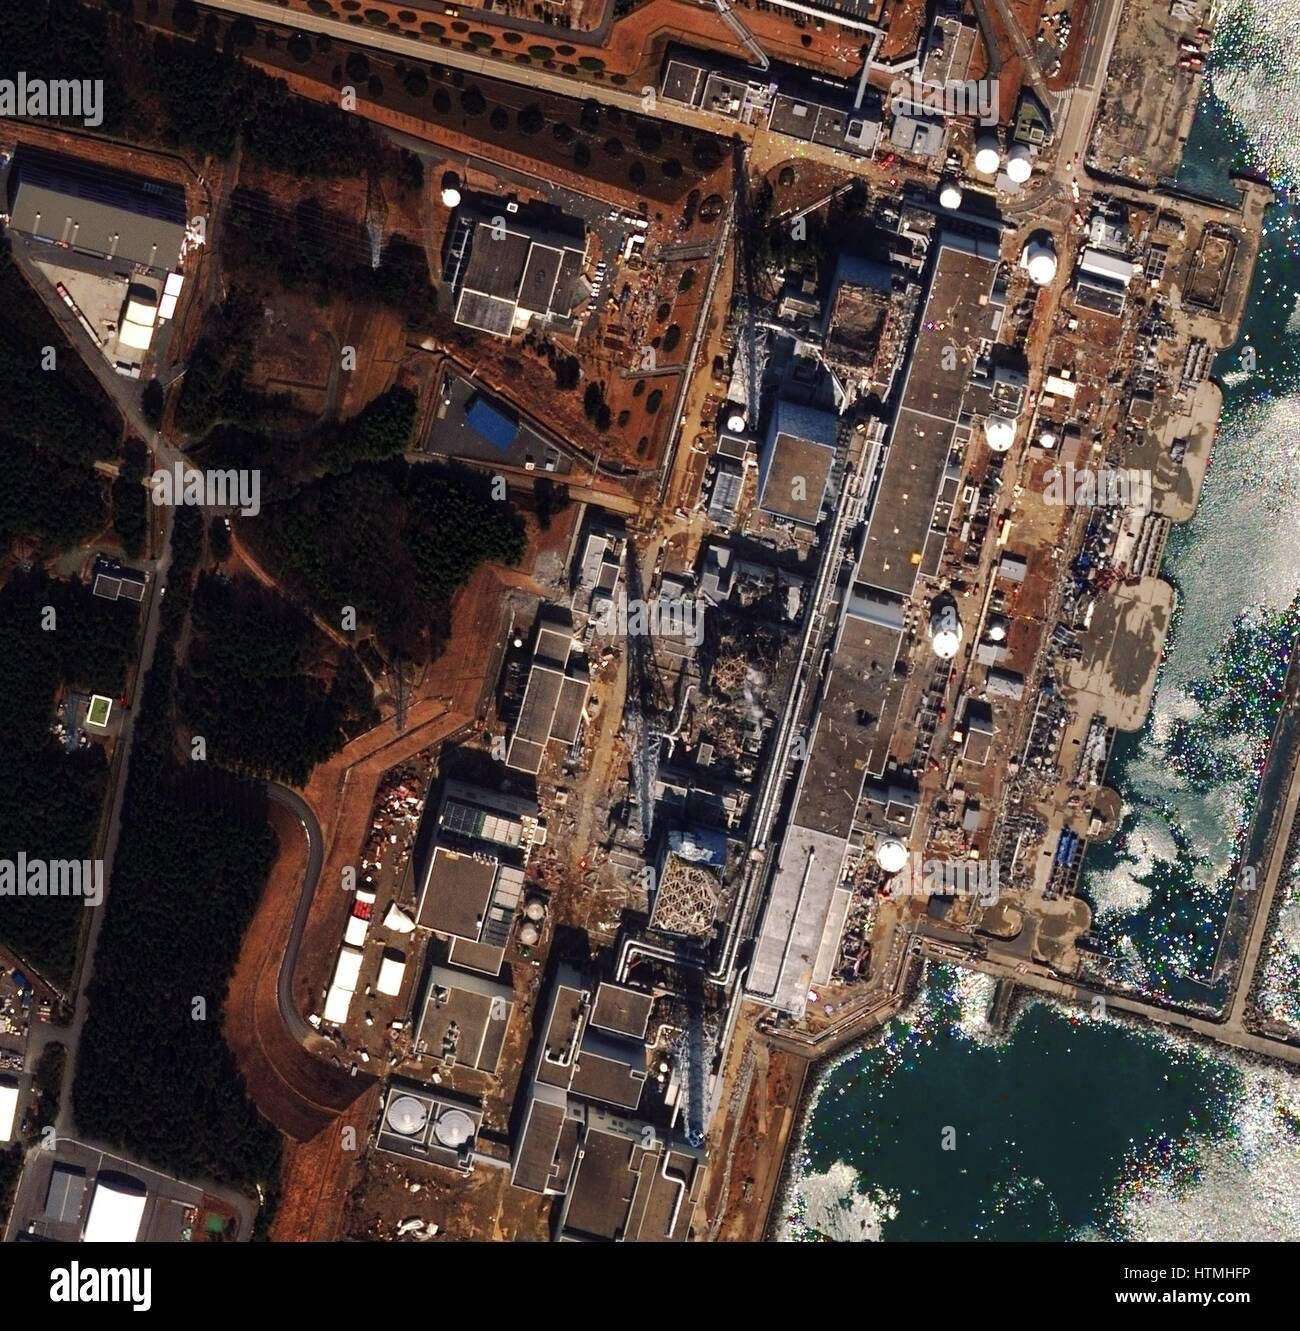 Fukushima Daiichi reactor in North eastern Japan 2011 Satellite view of earthquake damage to the reactors march15th - Stock Image